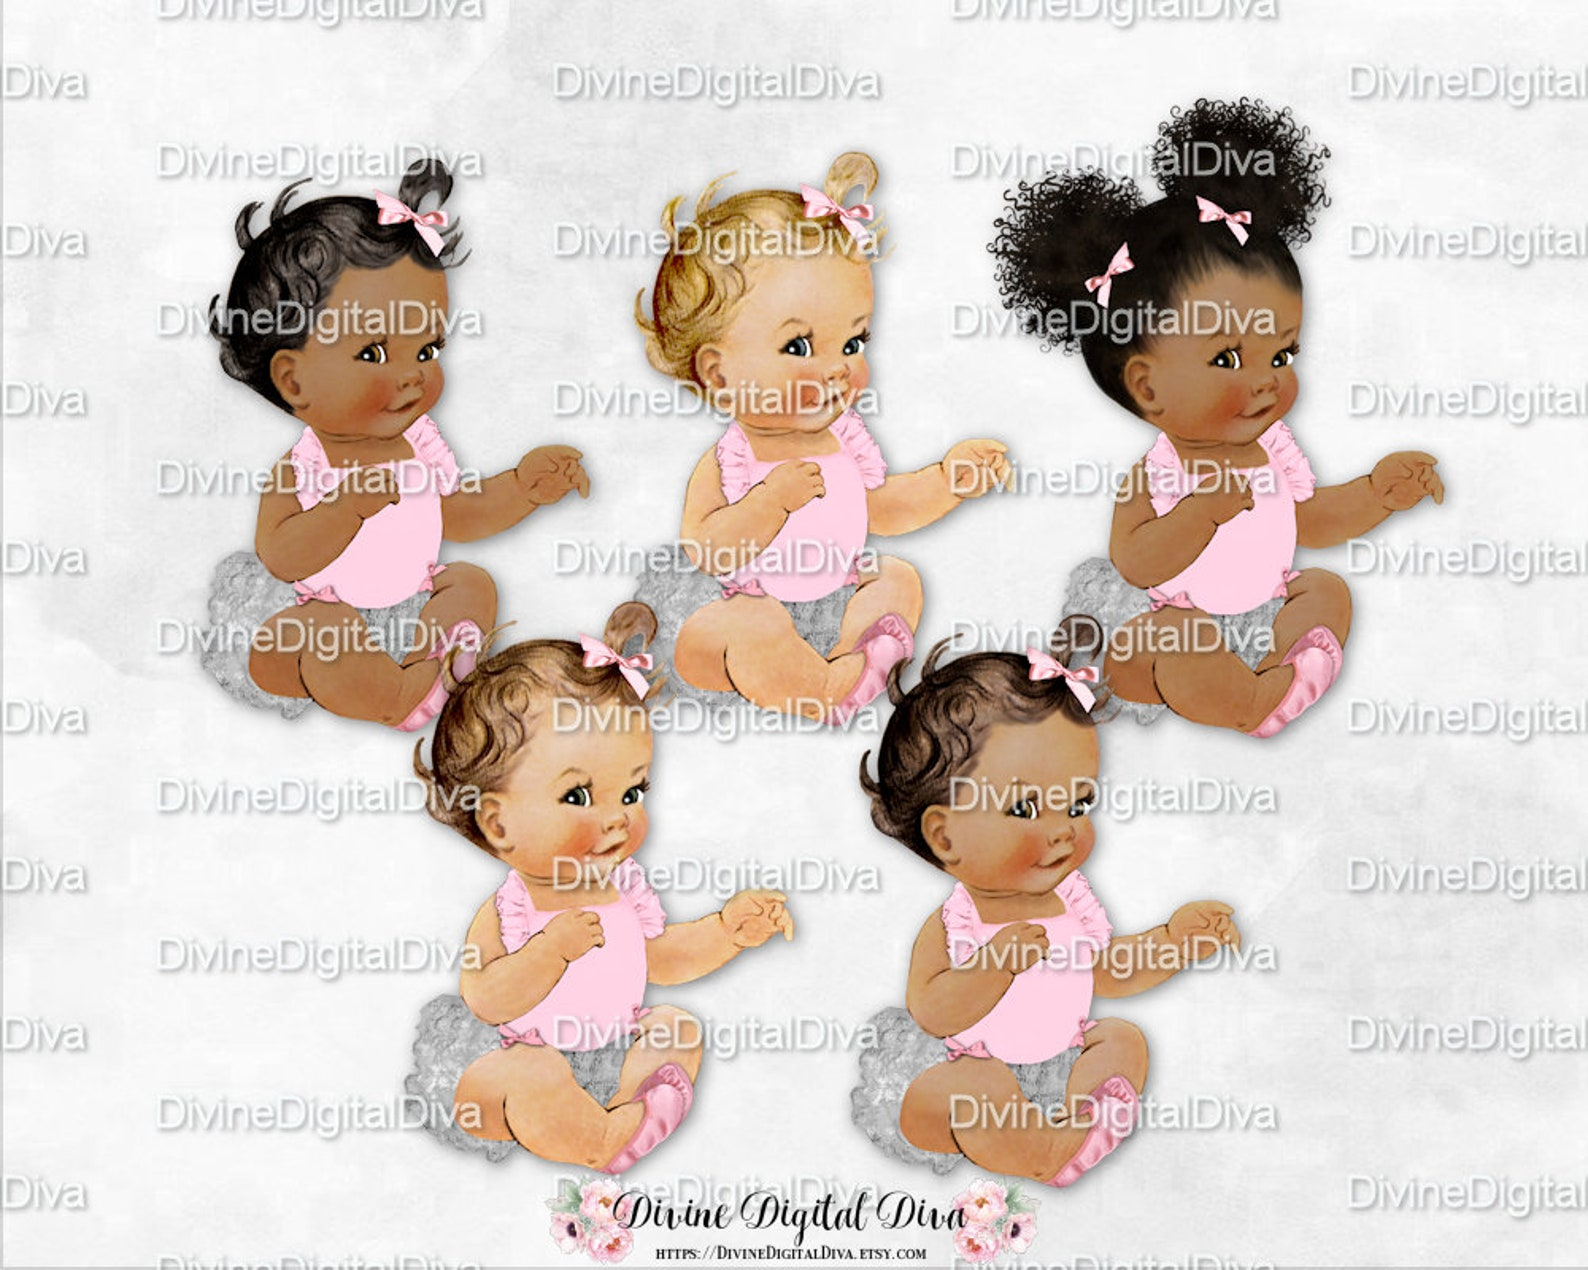 sitting pink silver ruffle pants ballet slipper | vintage baby girl 3 skin tones afro puffs | clipart instant download